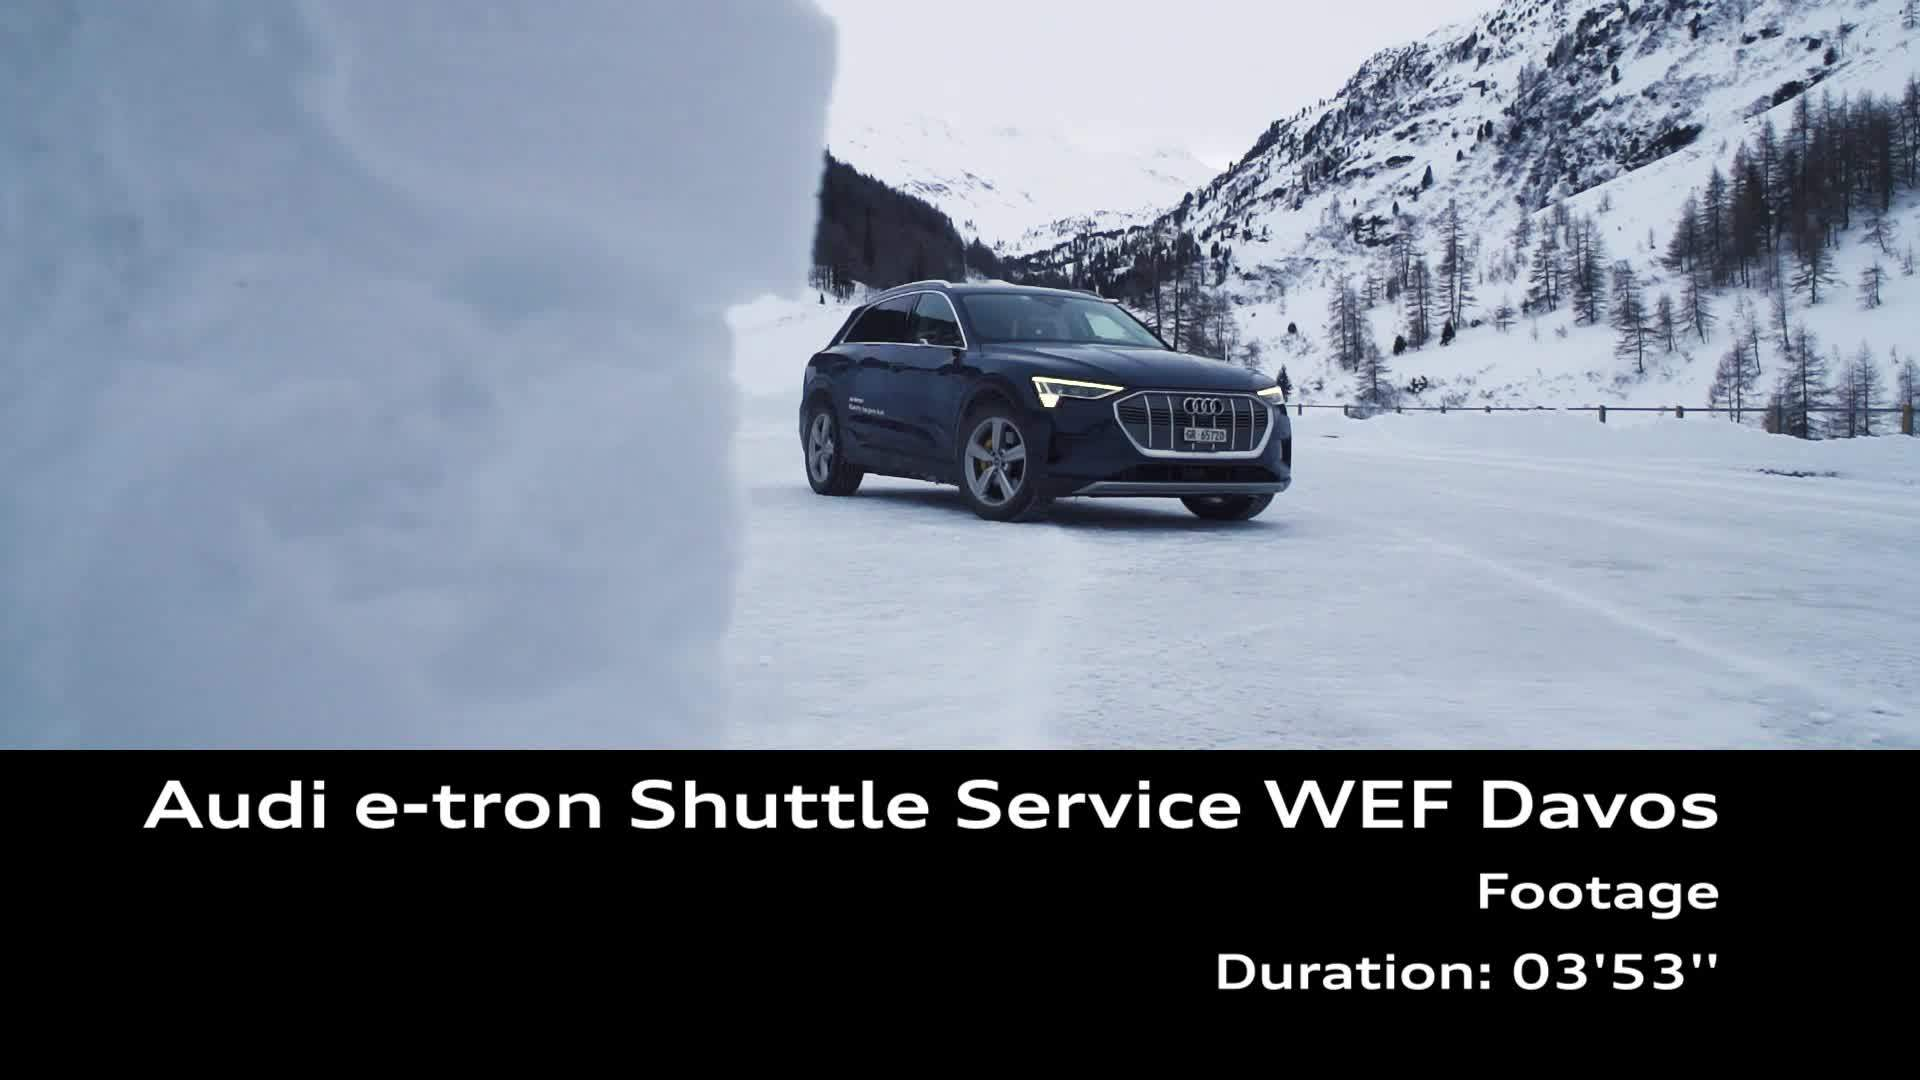 Footage Audi e-tron Shuttle Service WEF Davos